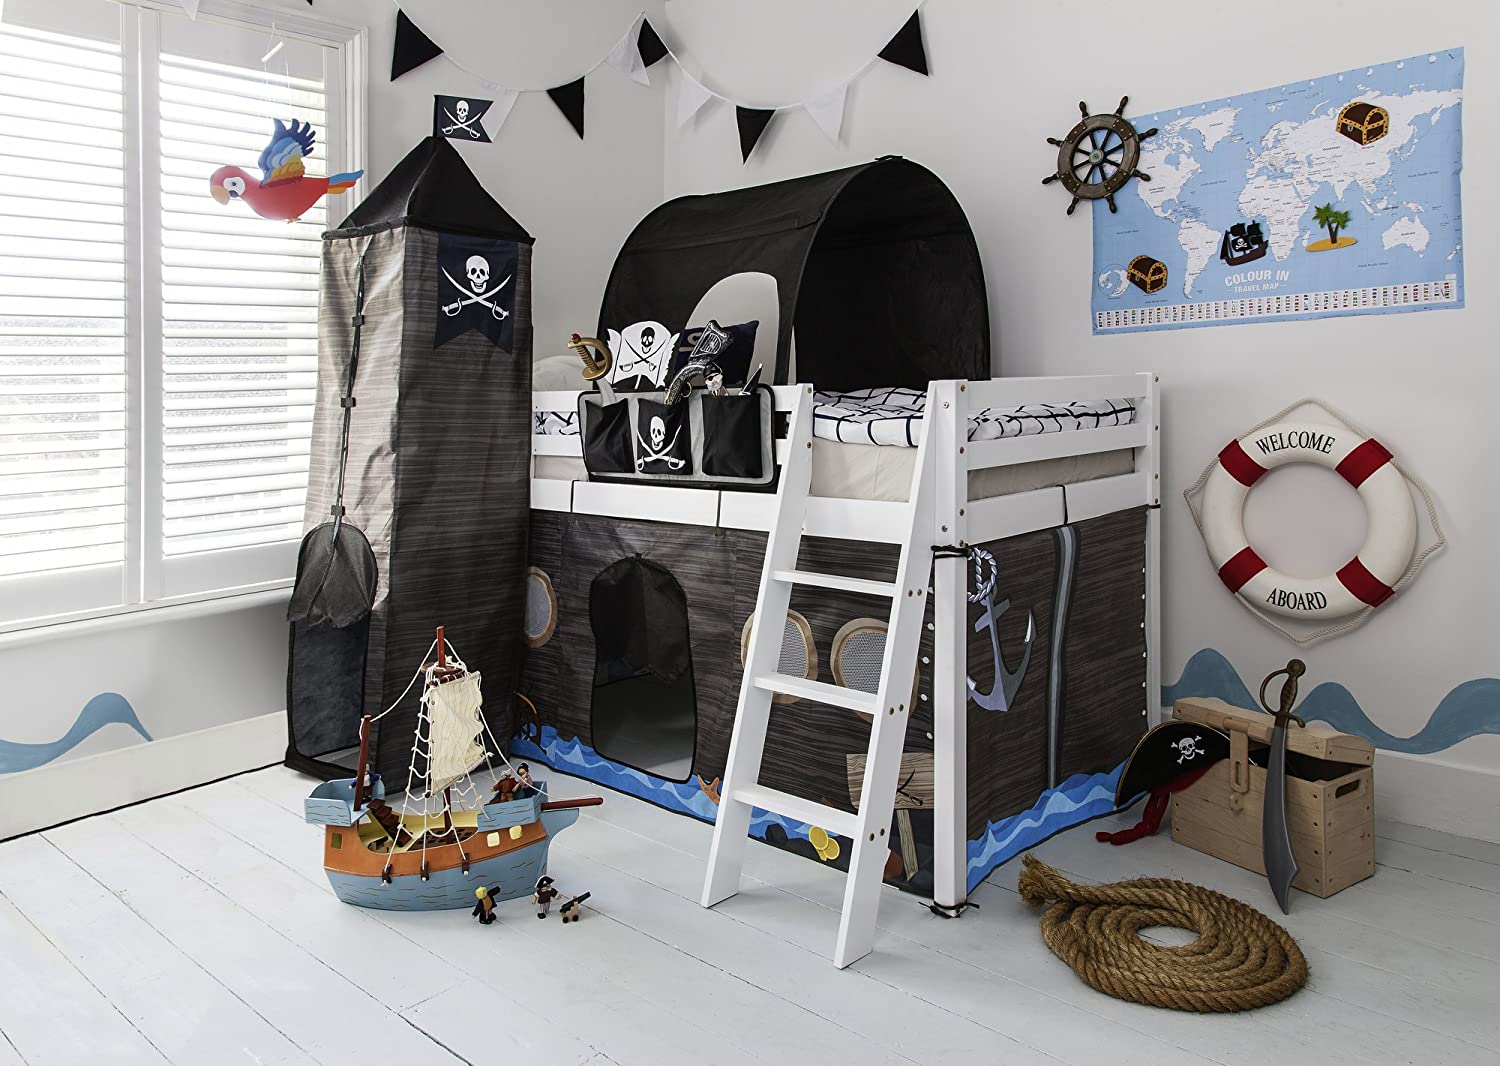 Cabin Bed Midsleeper Kids Pirate Hideaway with Tent, Tunnel, Tower & Tidy Noa & Nani (White) Noa and Nani